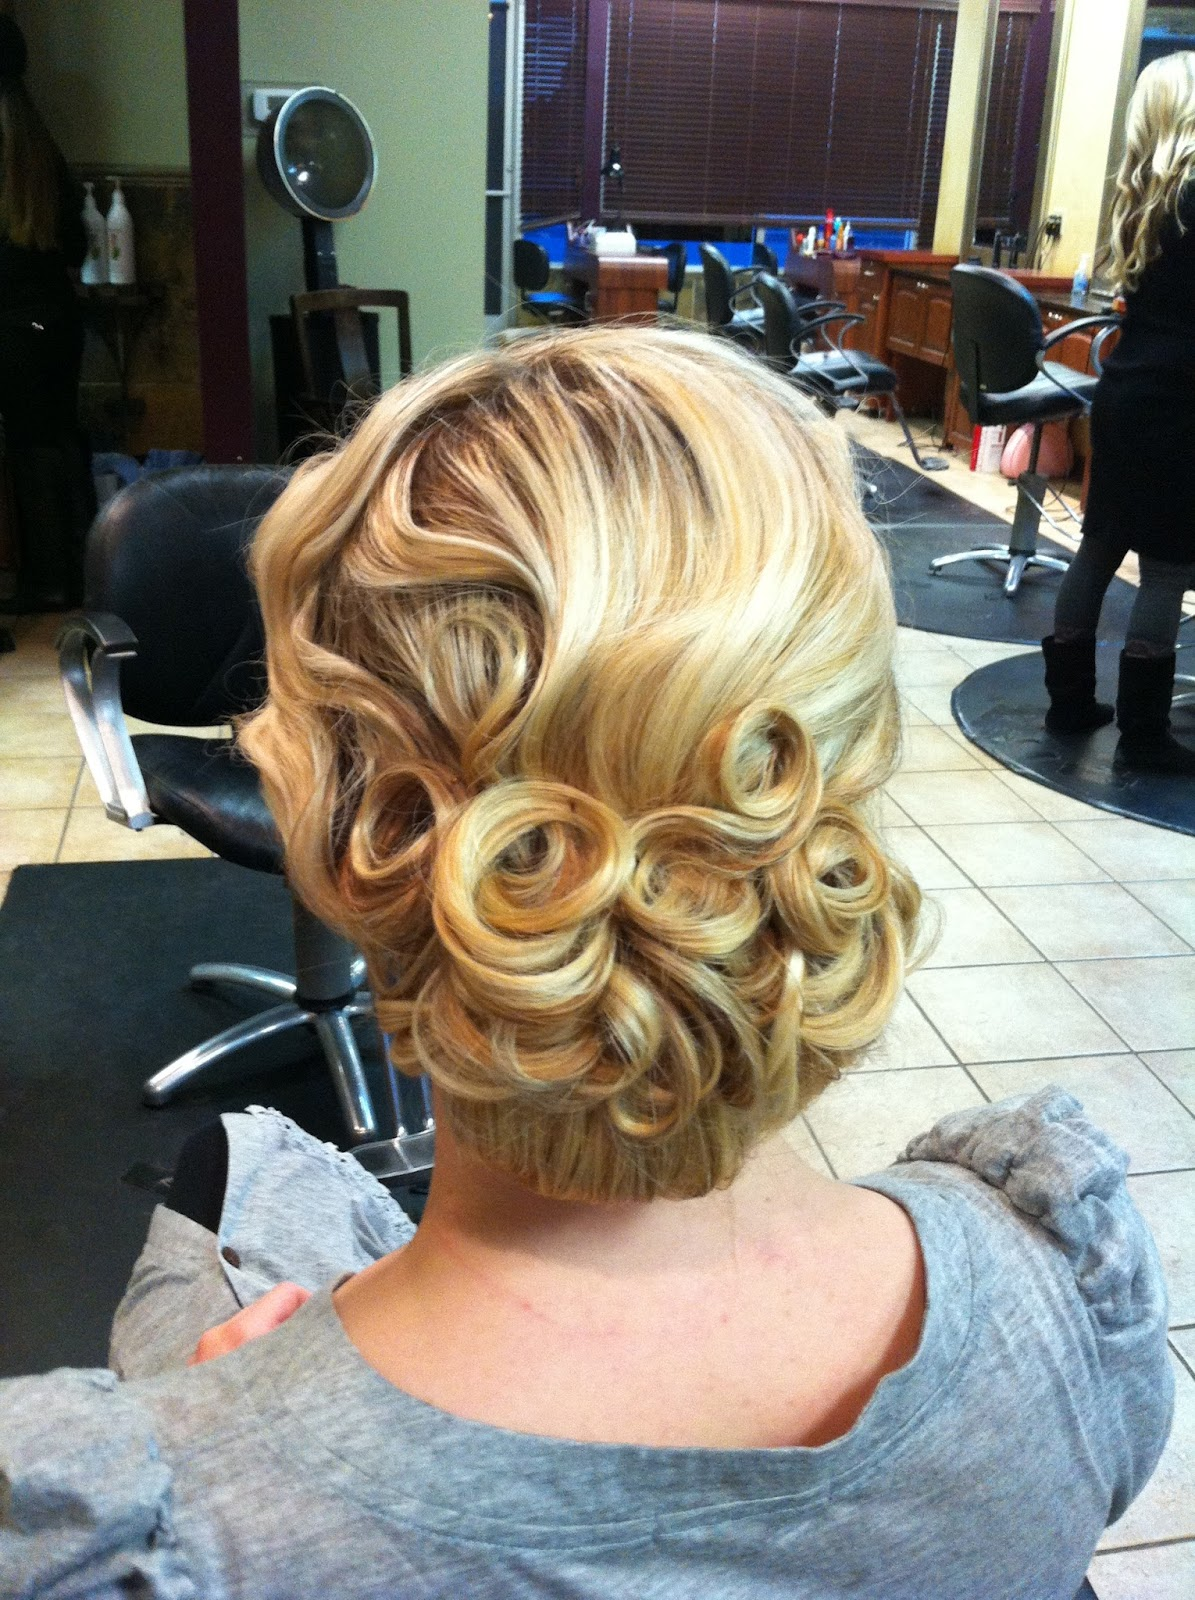 Awesome 1000 Images About Wedding Hairstyles On Pinterest Pin Curls Hairstyles For Women Draintrainus